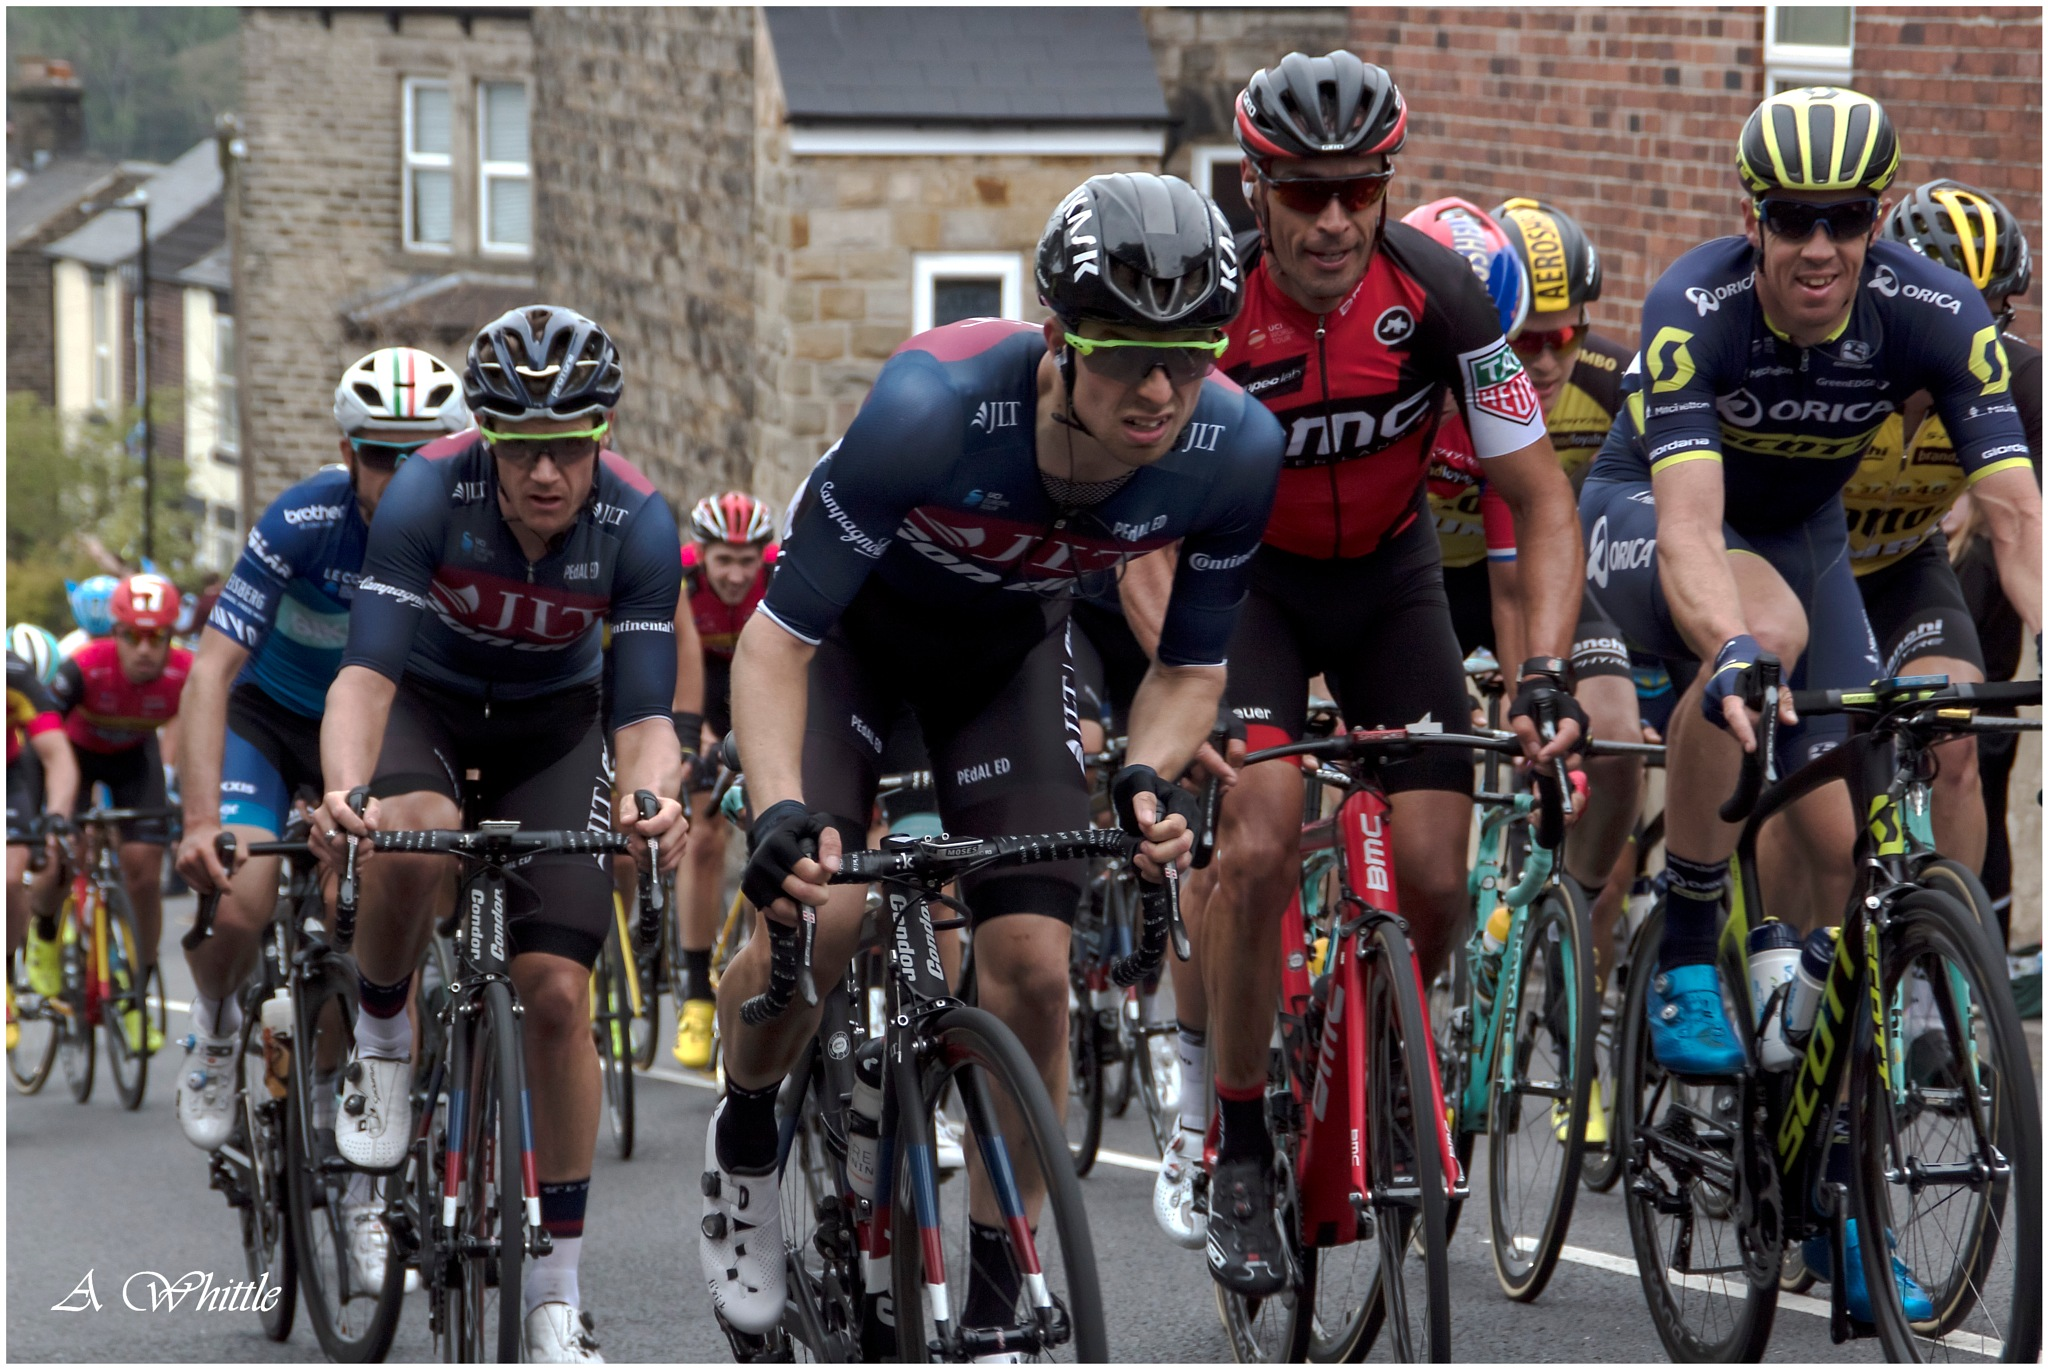 Tour de Yorkshire by Andy Whittle